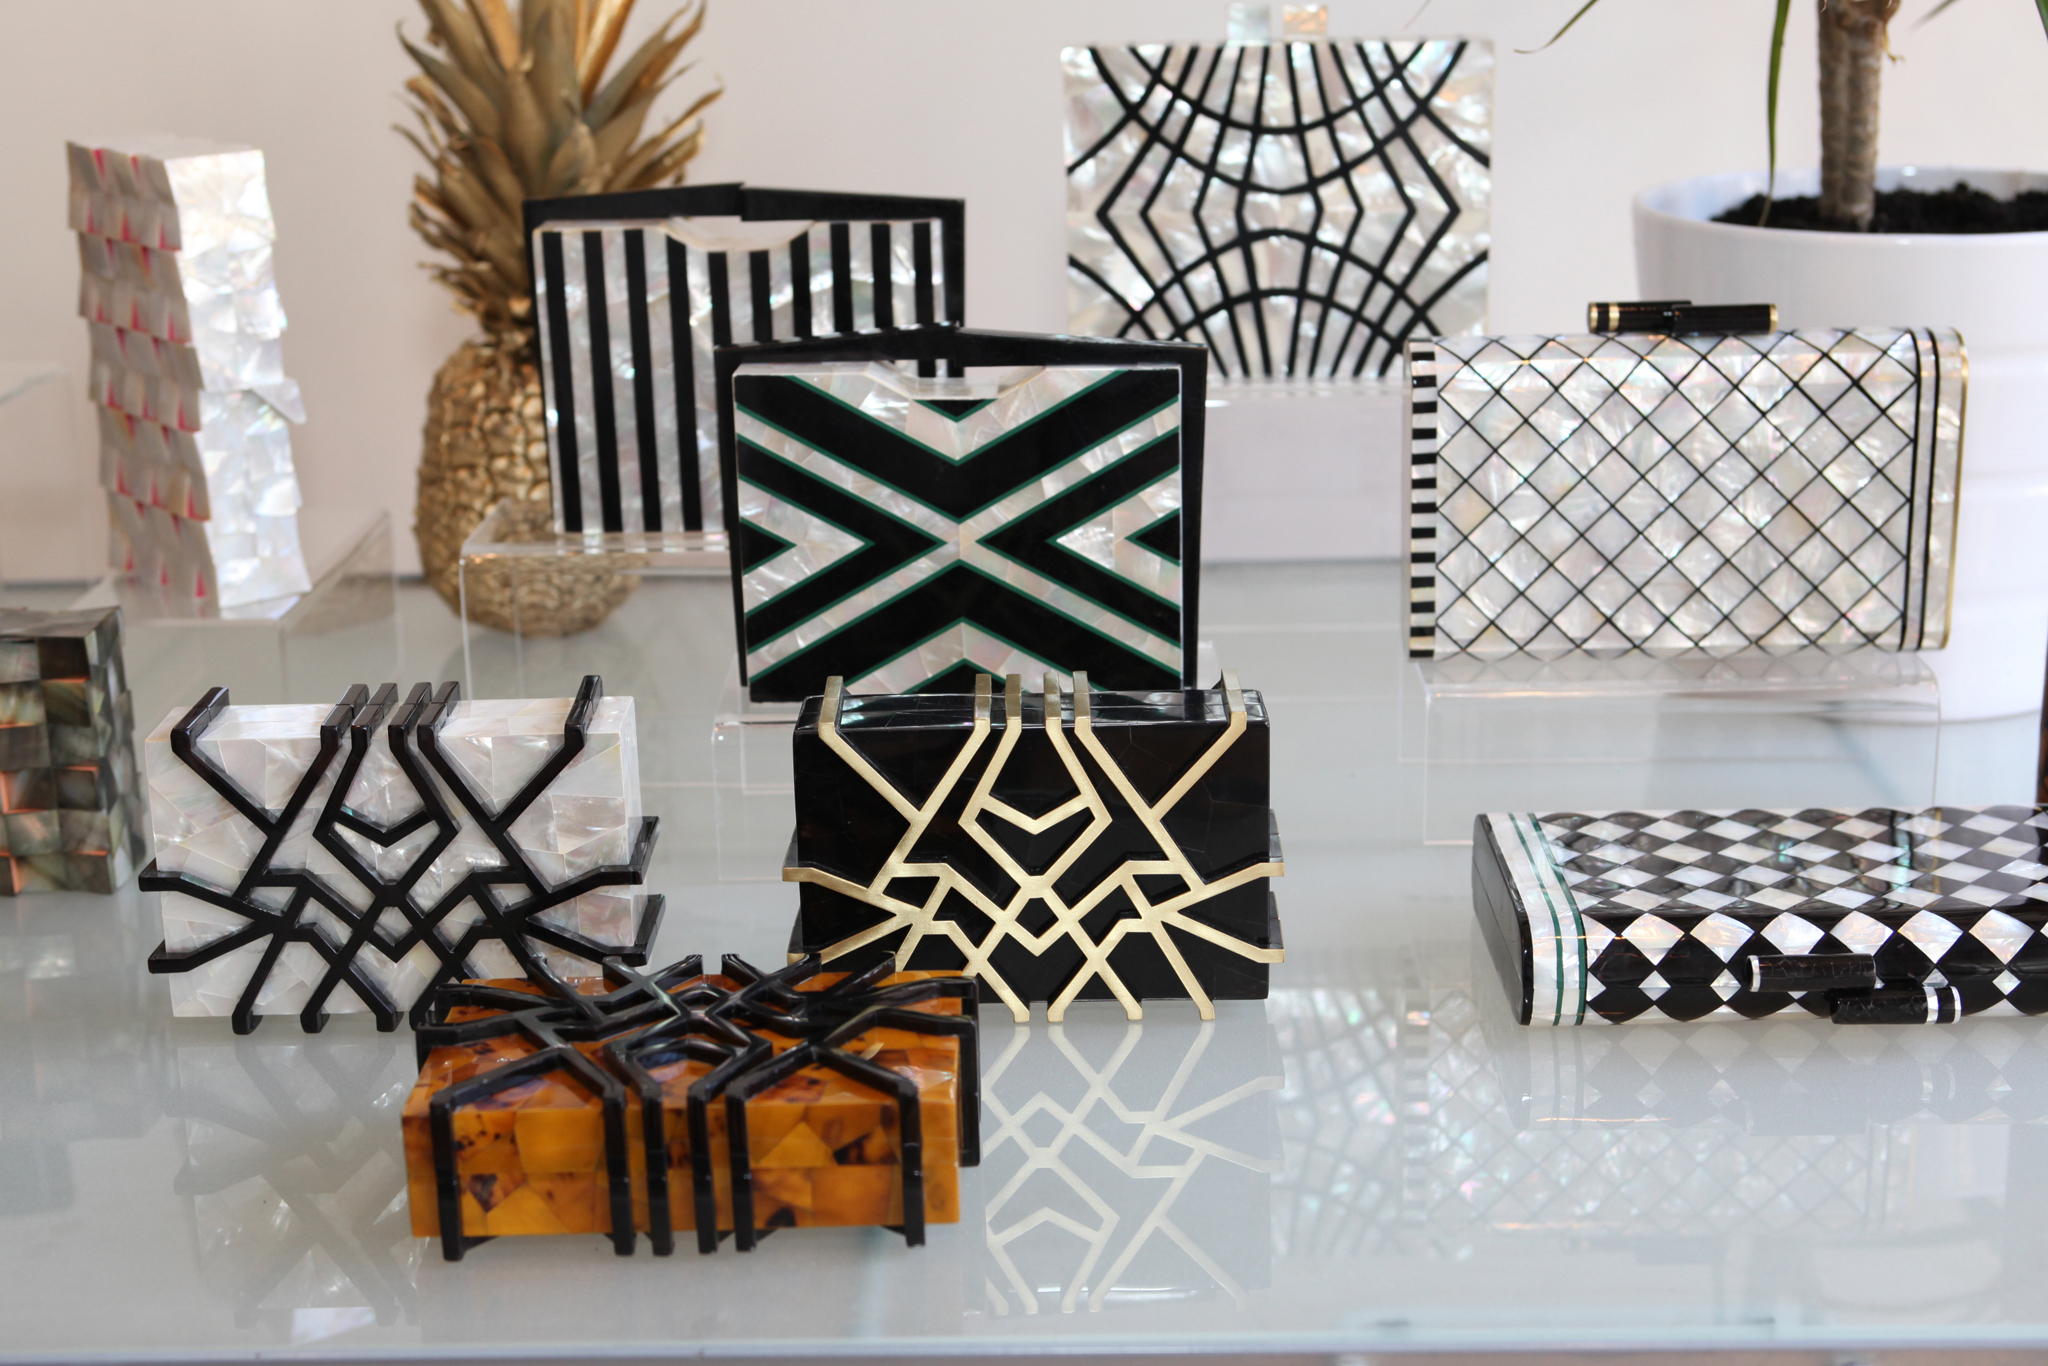 Nathalie Trad stayed true to her architectural, geometric aesthetic while introducing a subtle new motif to her line of clutches for spring.  The designer was inspired by Art Deco design, specifically The Raleigh Miami Beach hotel and its ornately shaped swimming pool, outlined in black tile. Trad interpreted this by adorning her classic mother of pearl bags with patterns in striking black tab shell. — A.D.